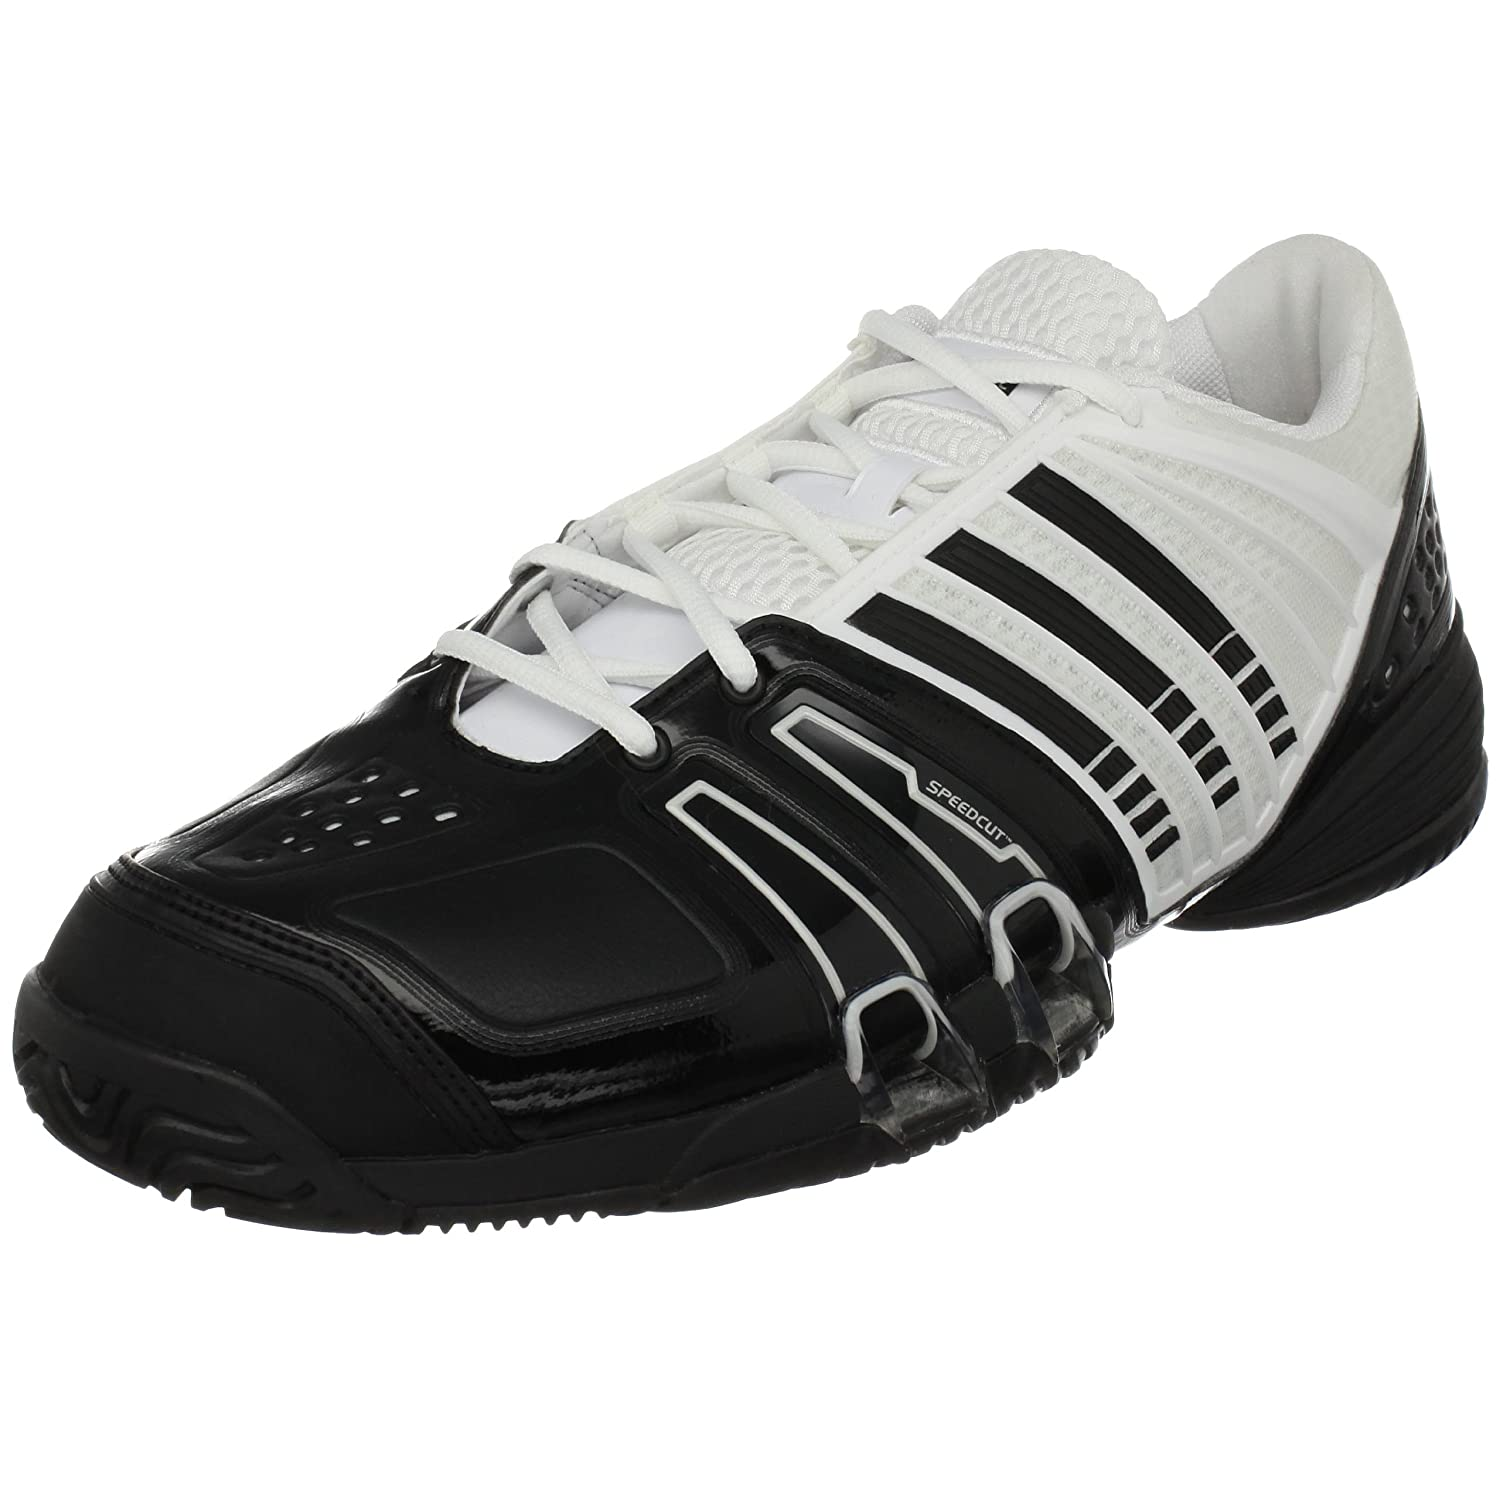 new product e14b4 1ba23 Adidas Men's Climacool Genius II Tennis Shoe, White/Black ...